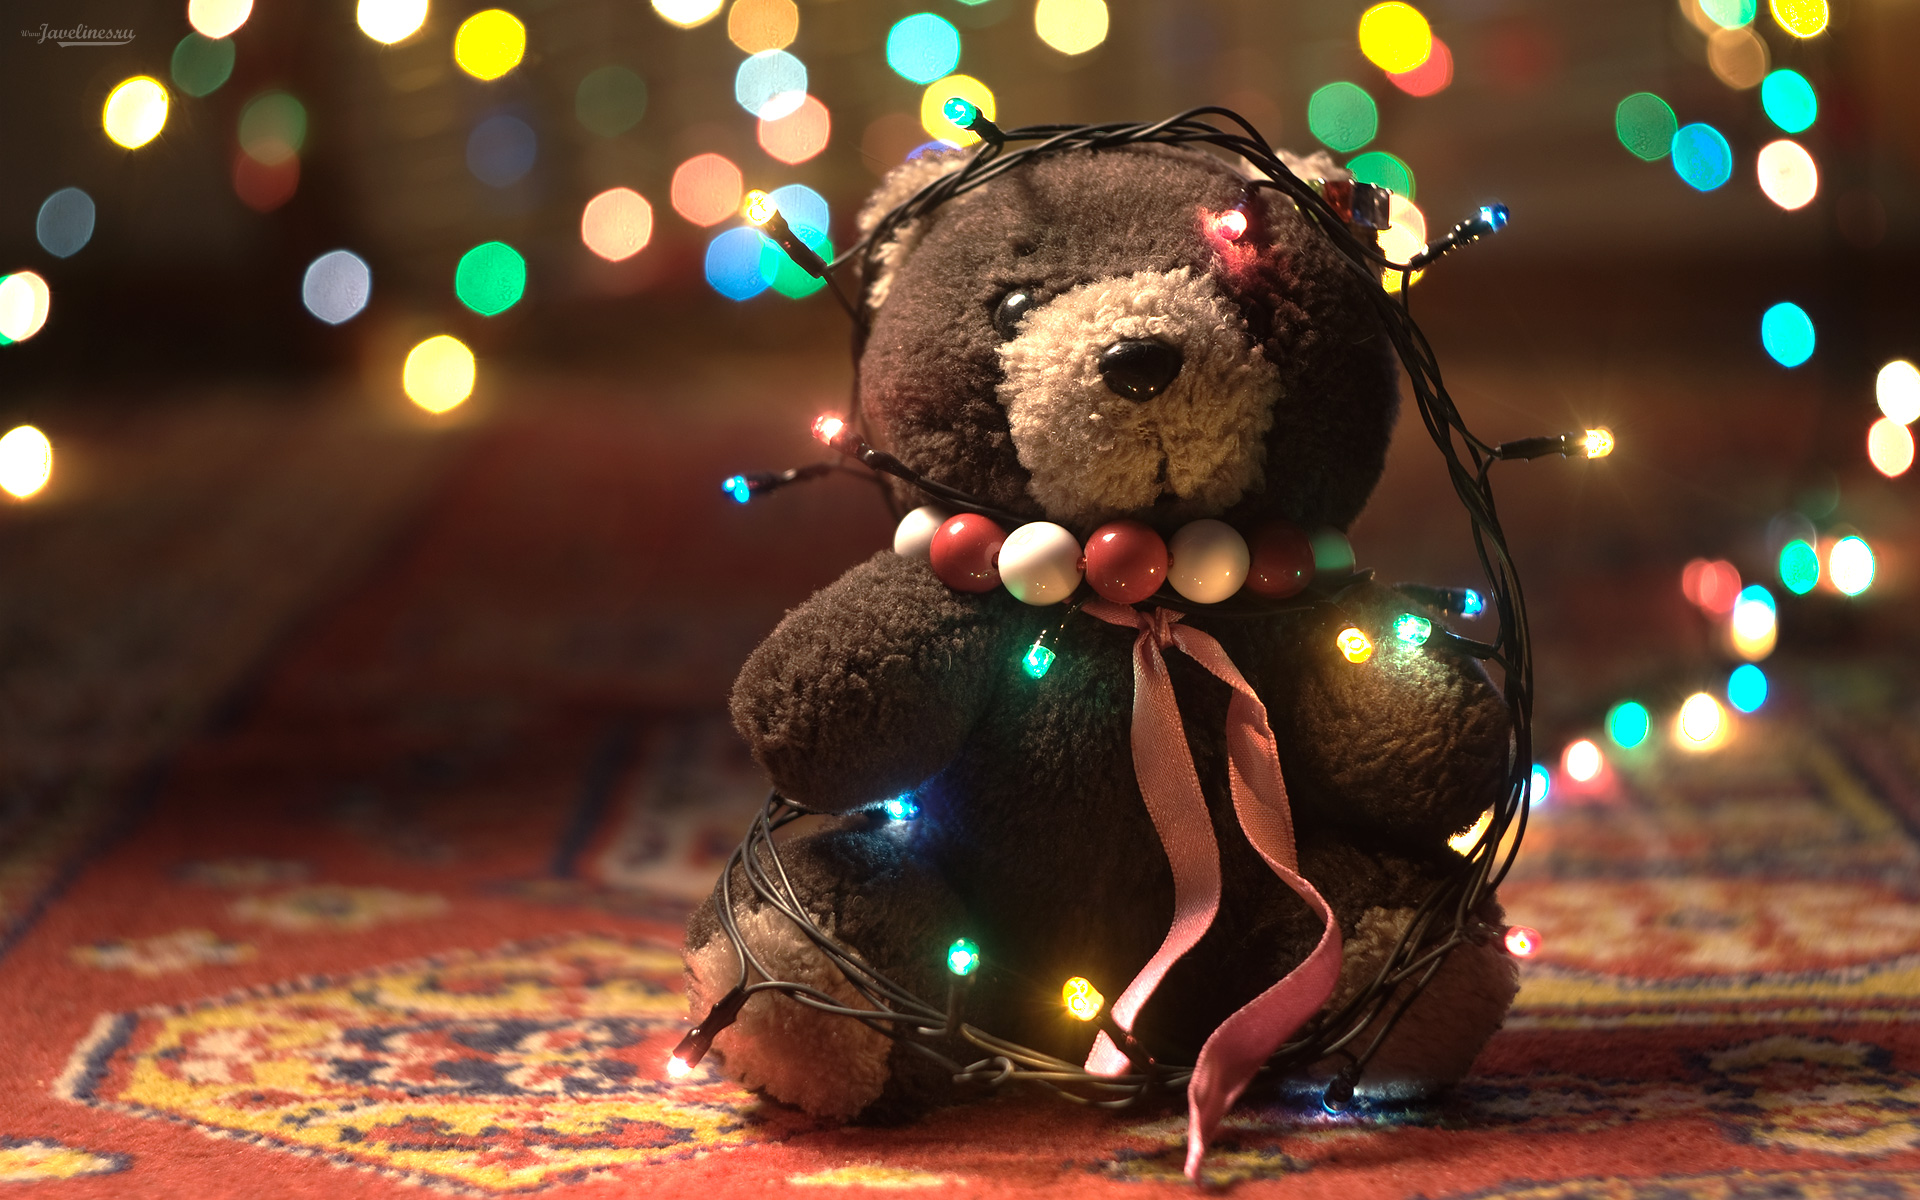 Bokeh Teddy Bear Doll Wallpaper